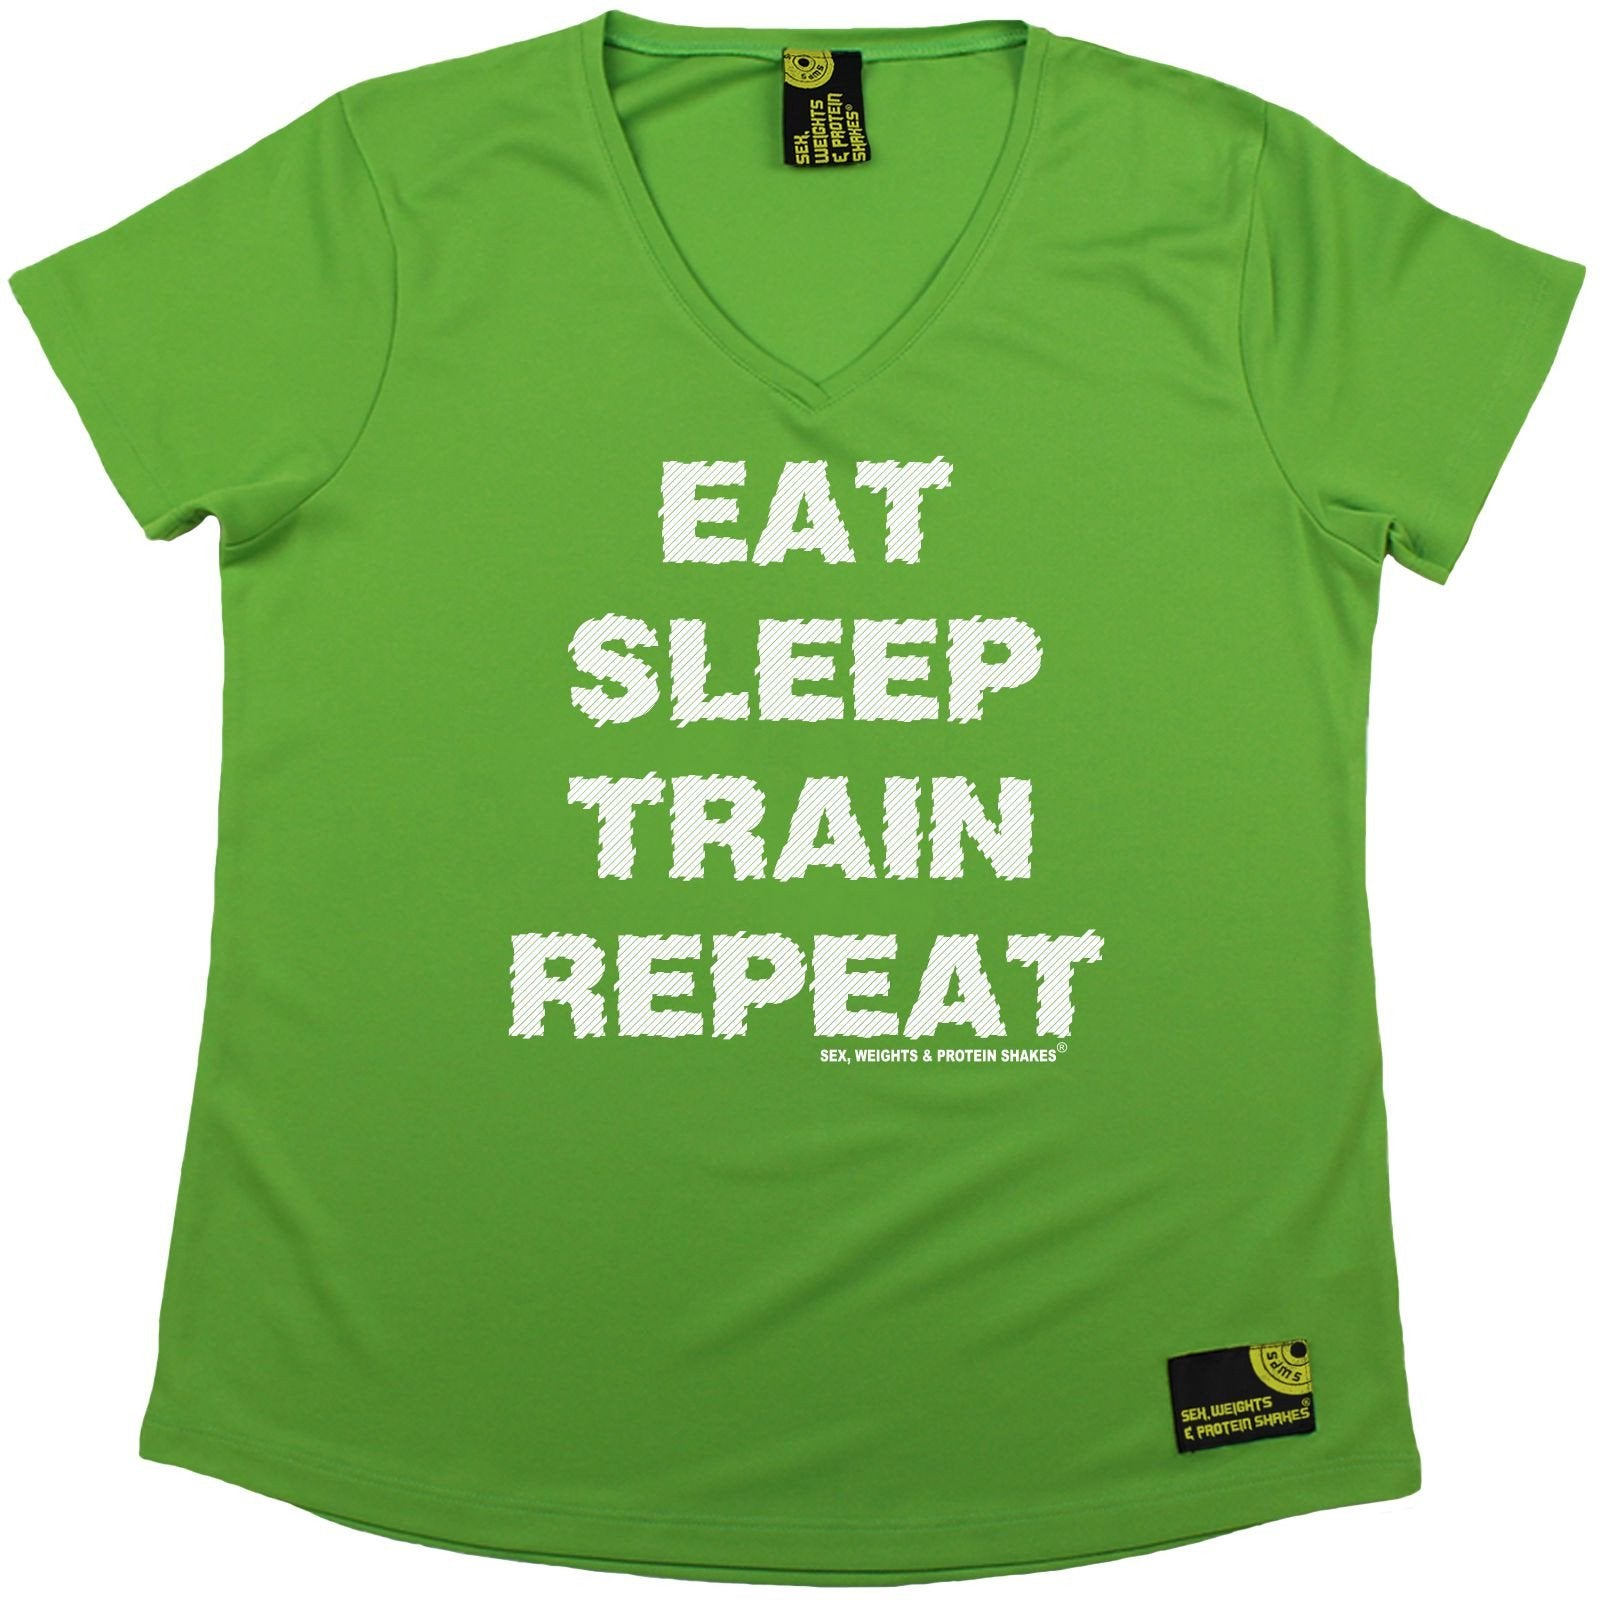 SWPS Eat Sleep Train Repeat Dry Fit Sports Round-neck t-shirt